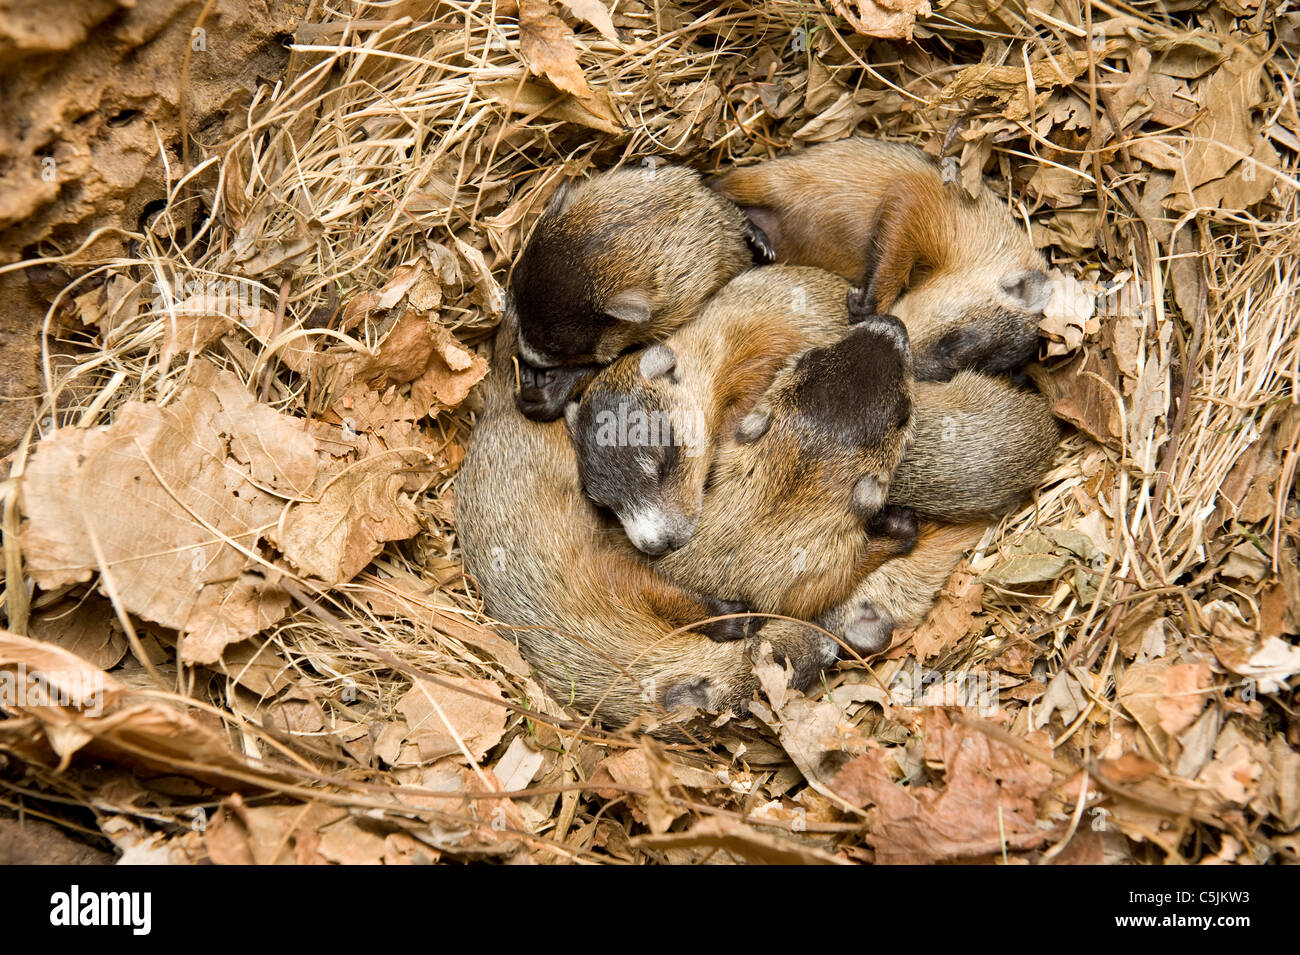 Litter of newborn Woodchucks in den Marmota monax also known as Groundhogs Eastern USA - Stock Image